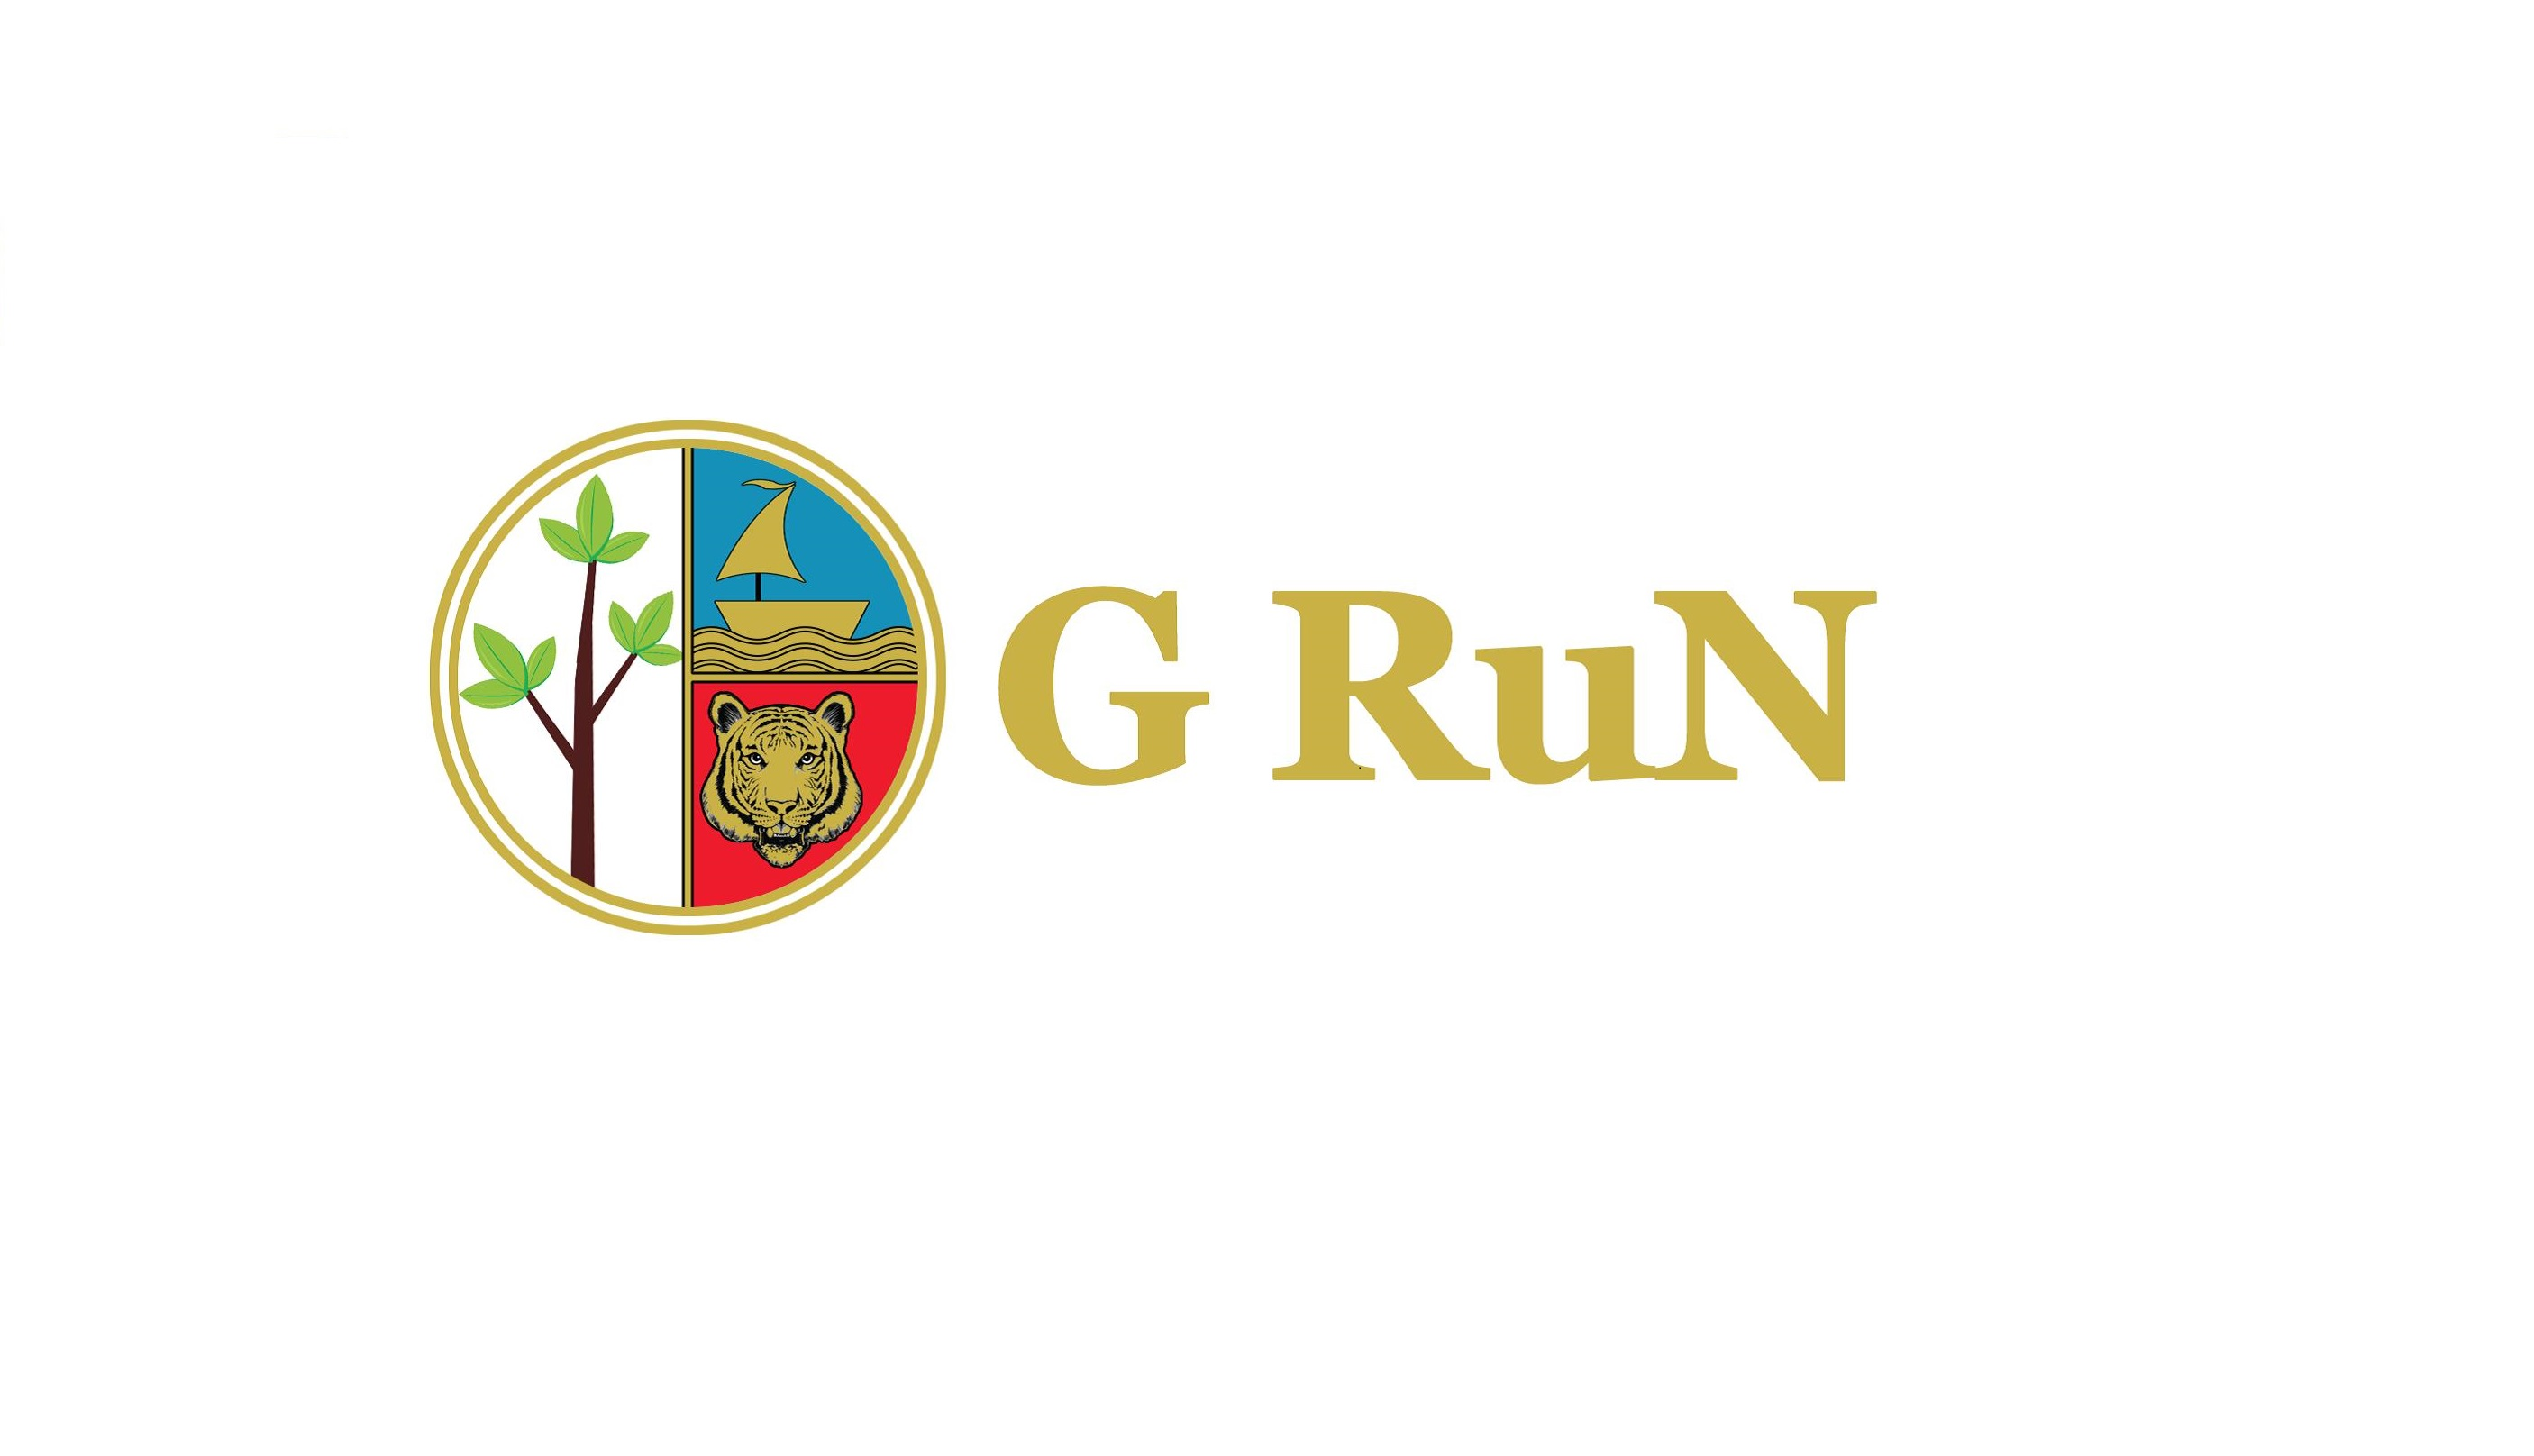 <p>G RUN trades high-end natural rubber for global tire manufacturers and other&nbsp;commodities as well across the Asian market. We aim to develop competitive&nbsp;suppliers and to provide customers with qualified products in the most timely and&nbsp;efficient way.</p>